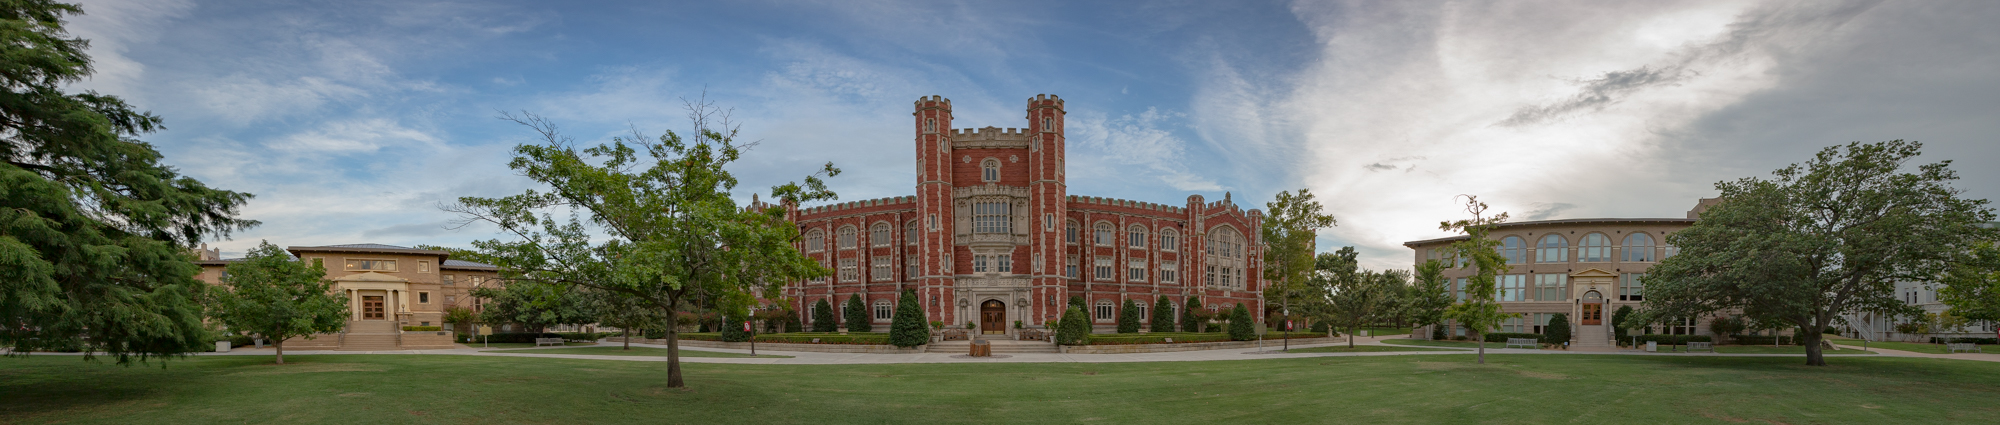 Panorama of buildings on South Oval